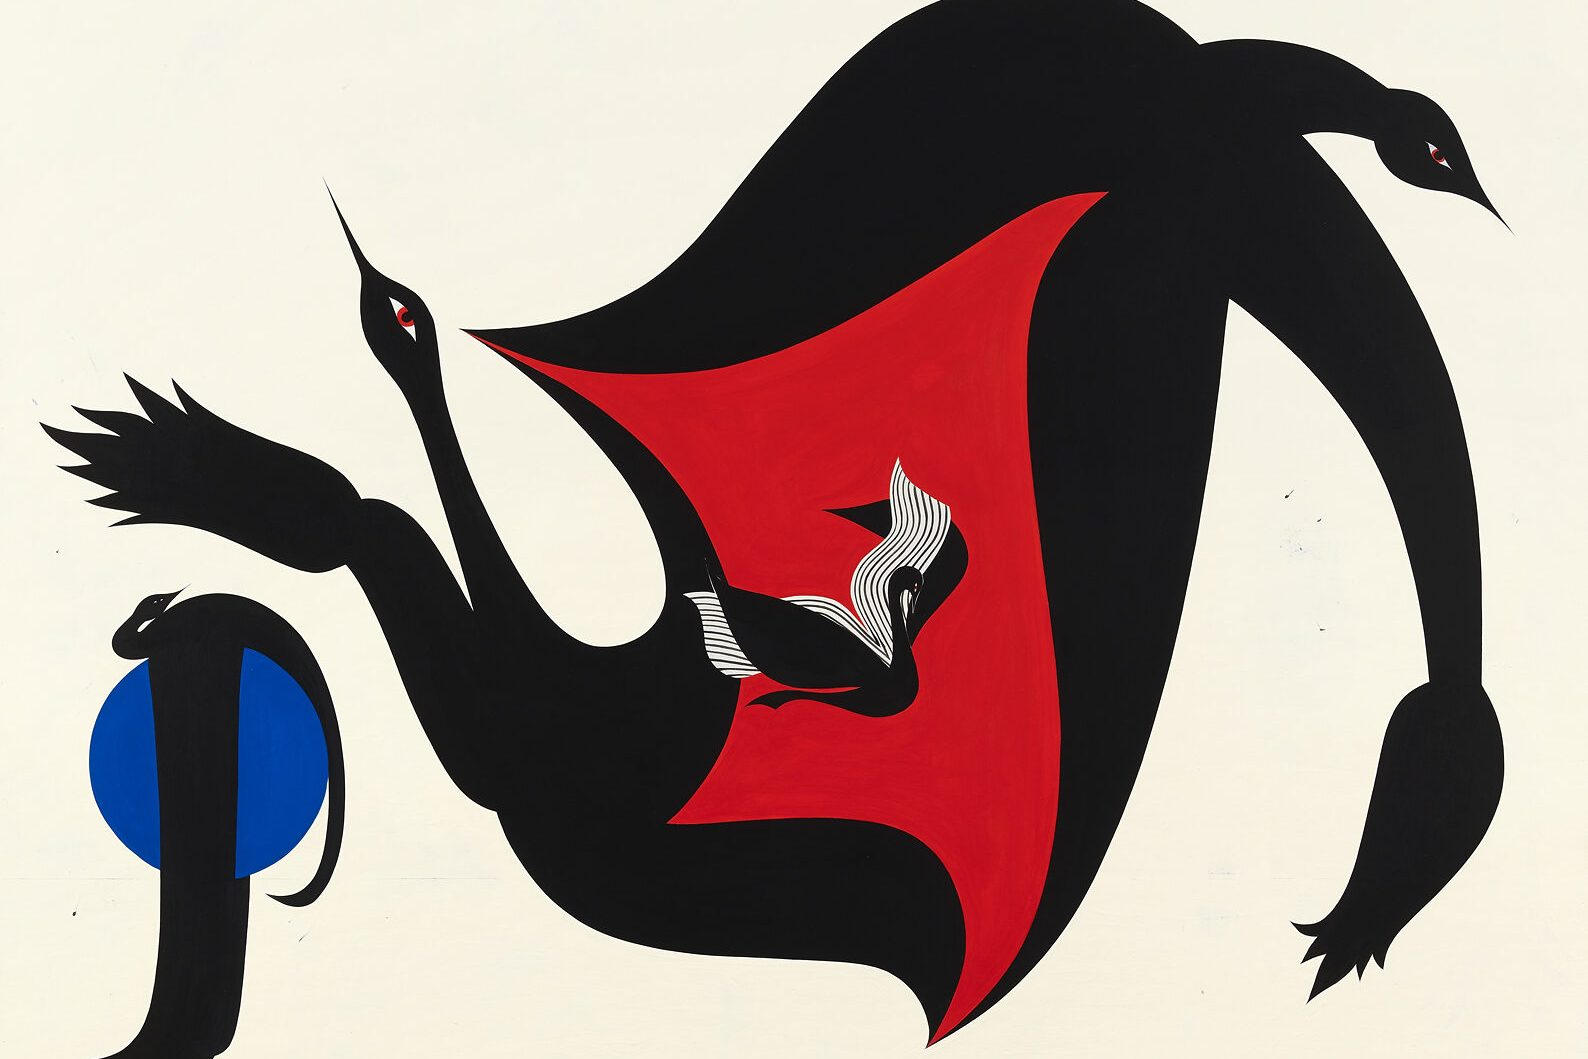 In a dazzling dance of wings, beak, body, and color, four corvids are stretched across a neutral cream sky, around a deep blue moon and encircling a yawning red void—the stripped and mythological depiction recalls superstitious themes of spirit, power, and story.